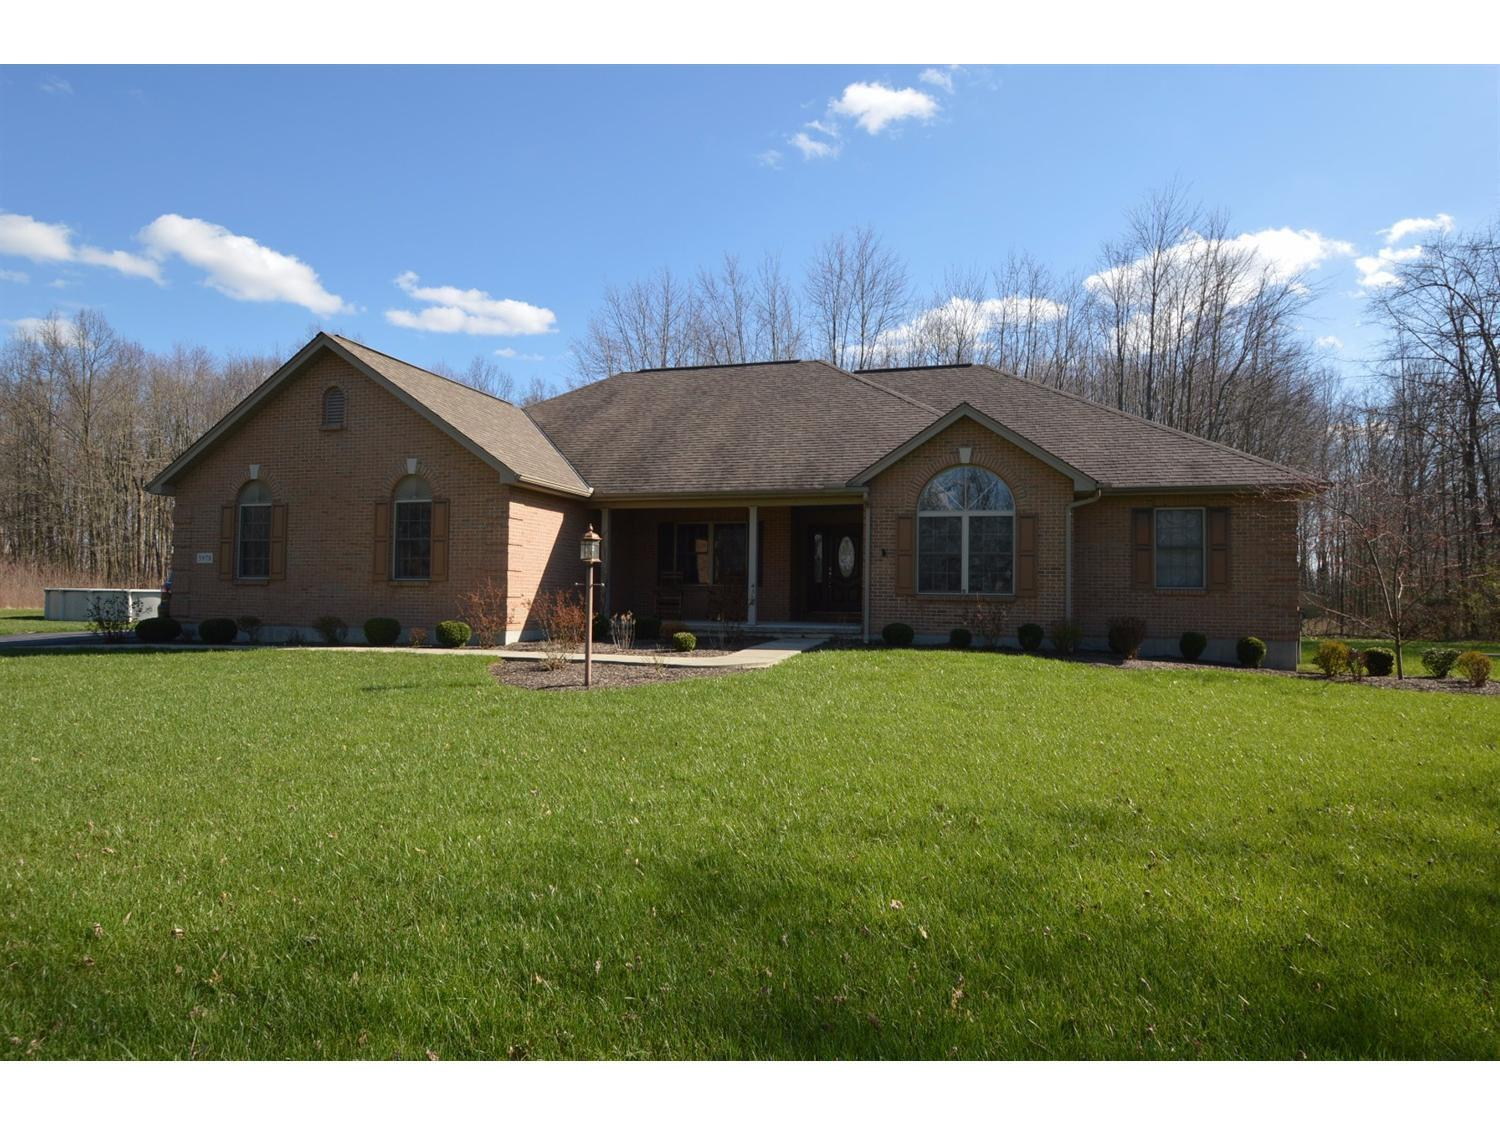 5978 St Rt 133 Wayne Twp. (Clermont Co.), OH